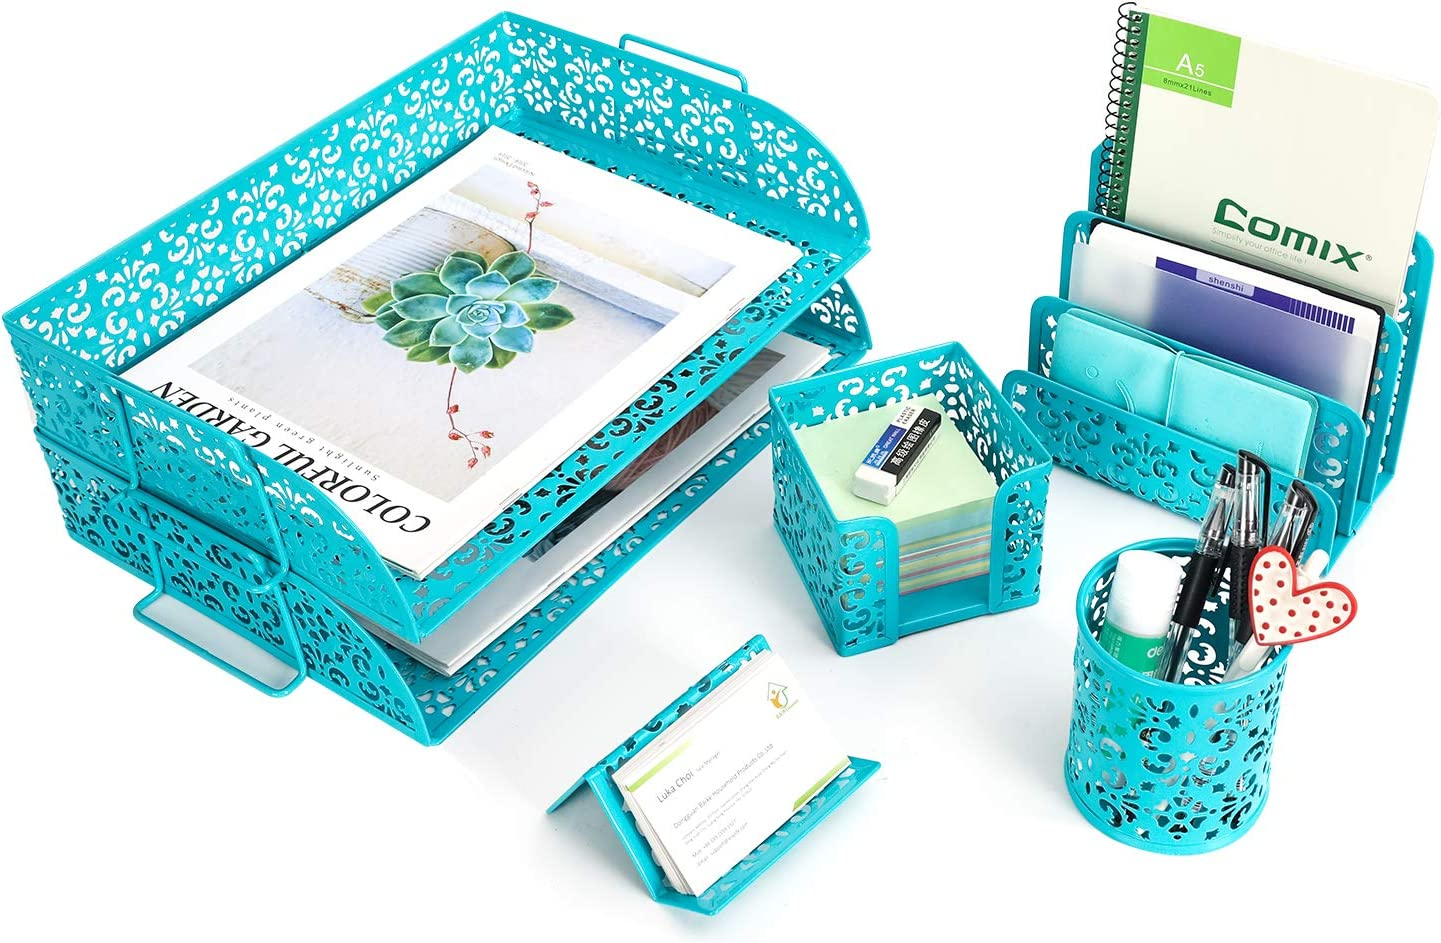 EasyPAG 5 in 1 Desk Organizer Set - 2 Tier Stackable Desk Tray,Mail Sorter, Pencil Holder,Business Card Holder and Stick Note Holder,Dark Teal